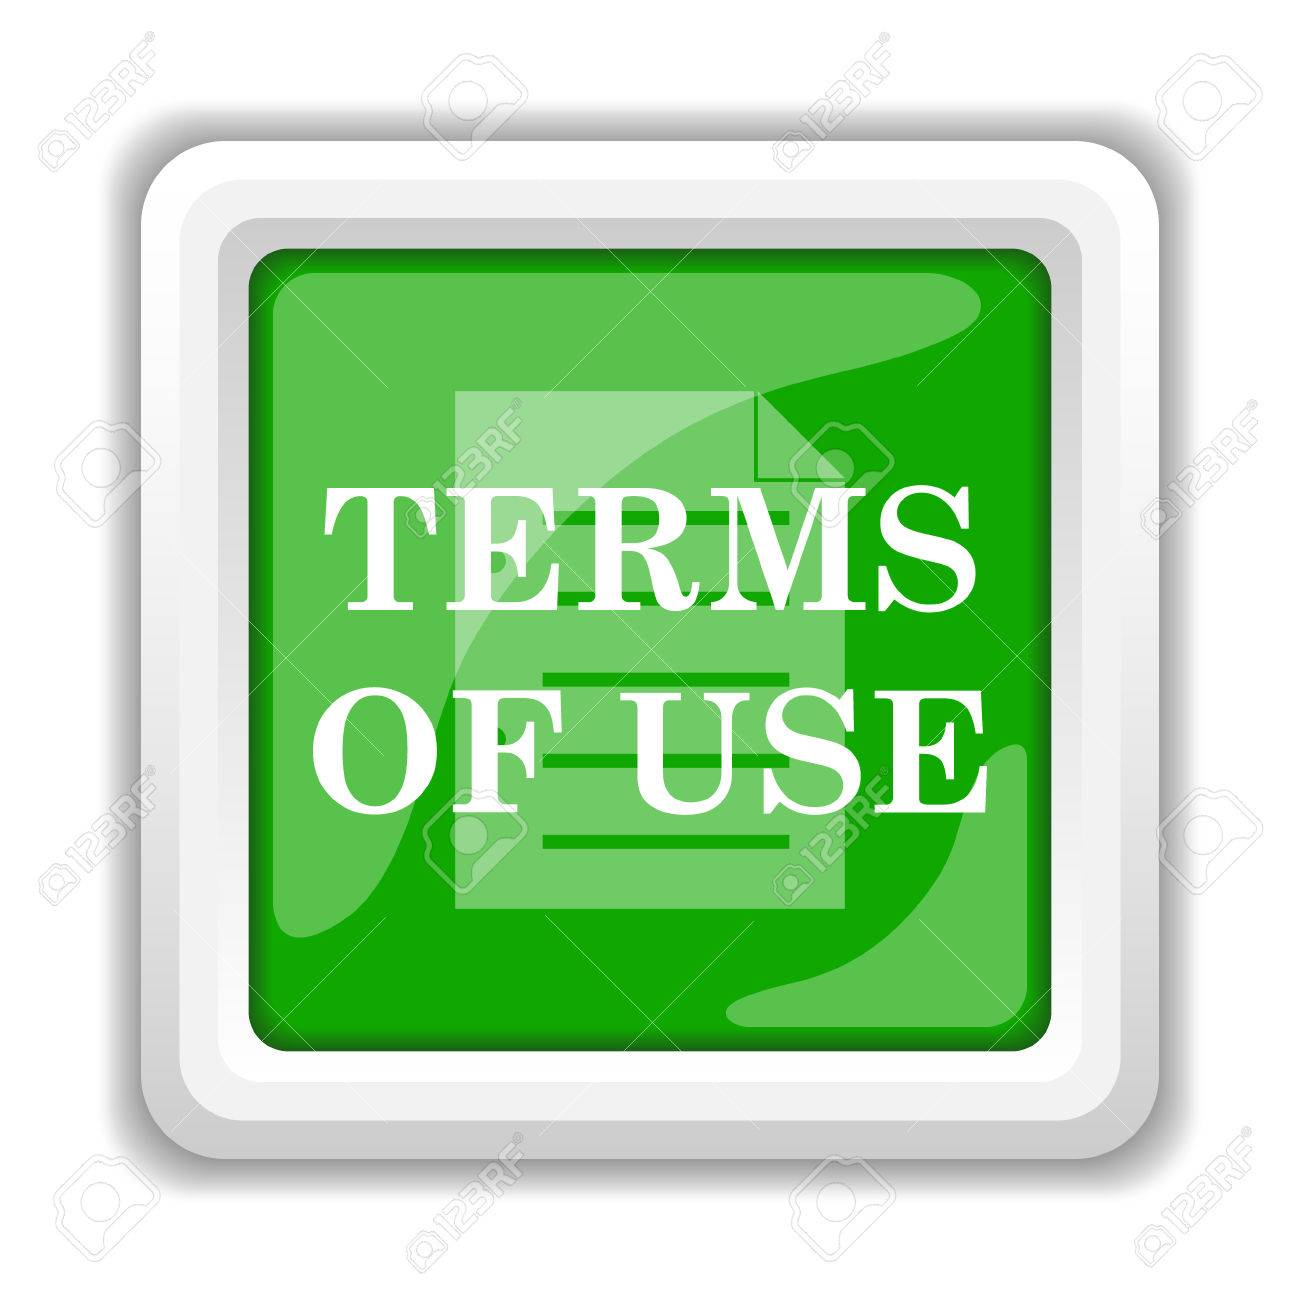 Terms of use - Stock Photo Terms Of Use Icon Internet Button On White Background